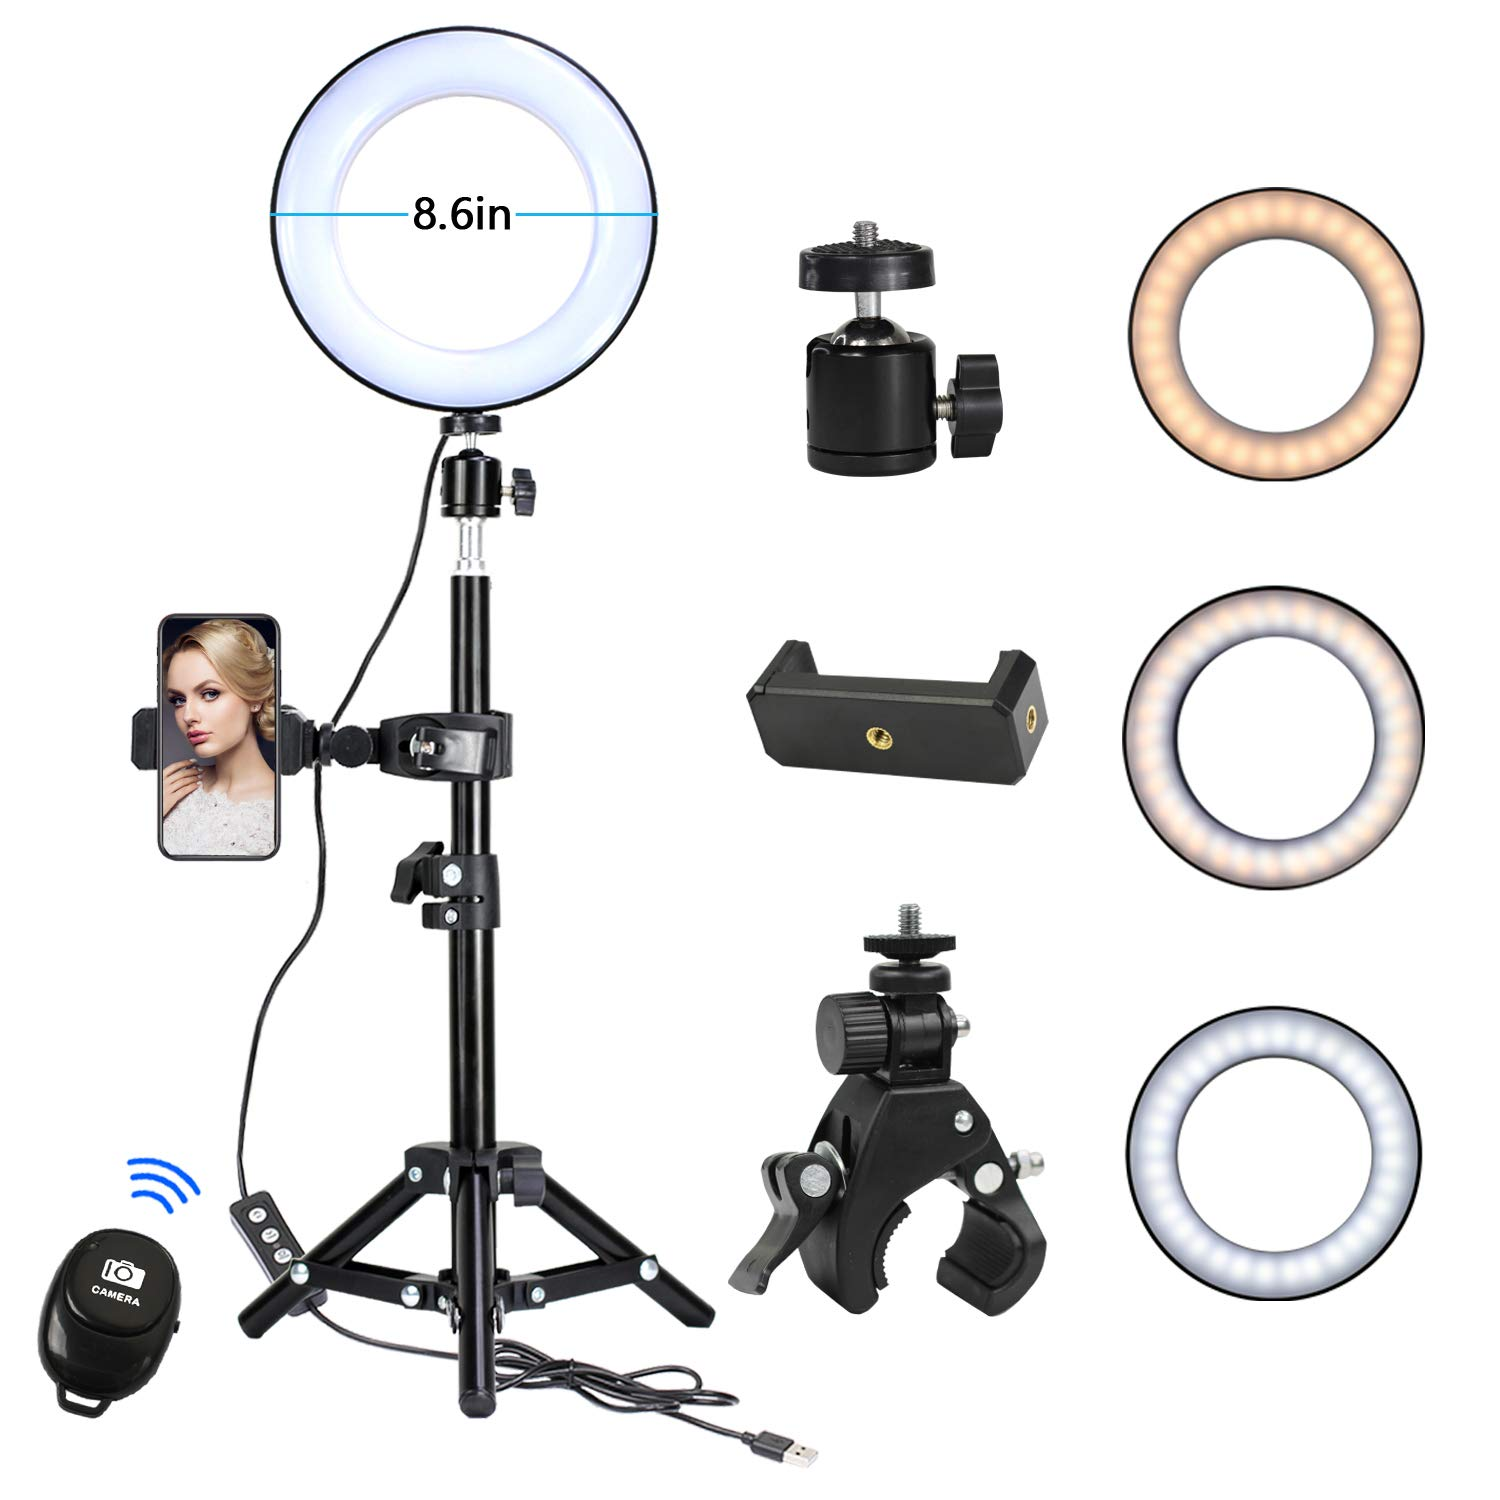 KTELE 8.6'' Selfie Ring Light with Tripod Stand for YouTube Video and Makeup with Cell Phone Holder Desktop LED Lamp with 3 Light Modes & 11 Brightness Level ,Remote by KTELE